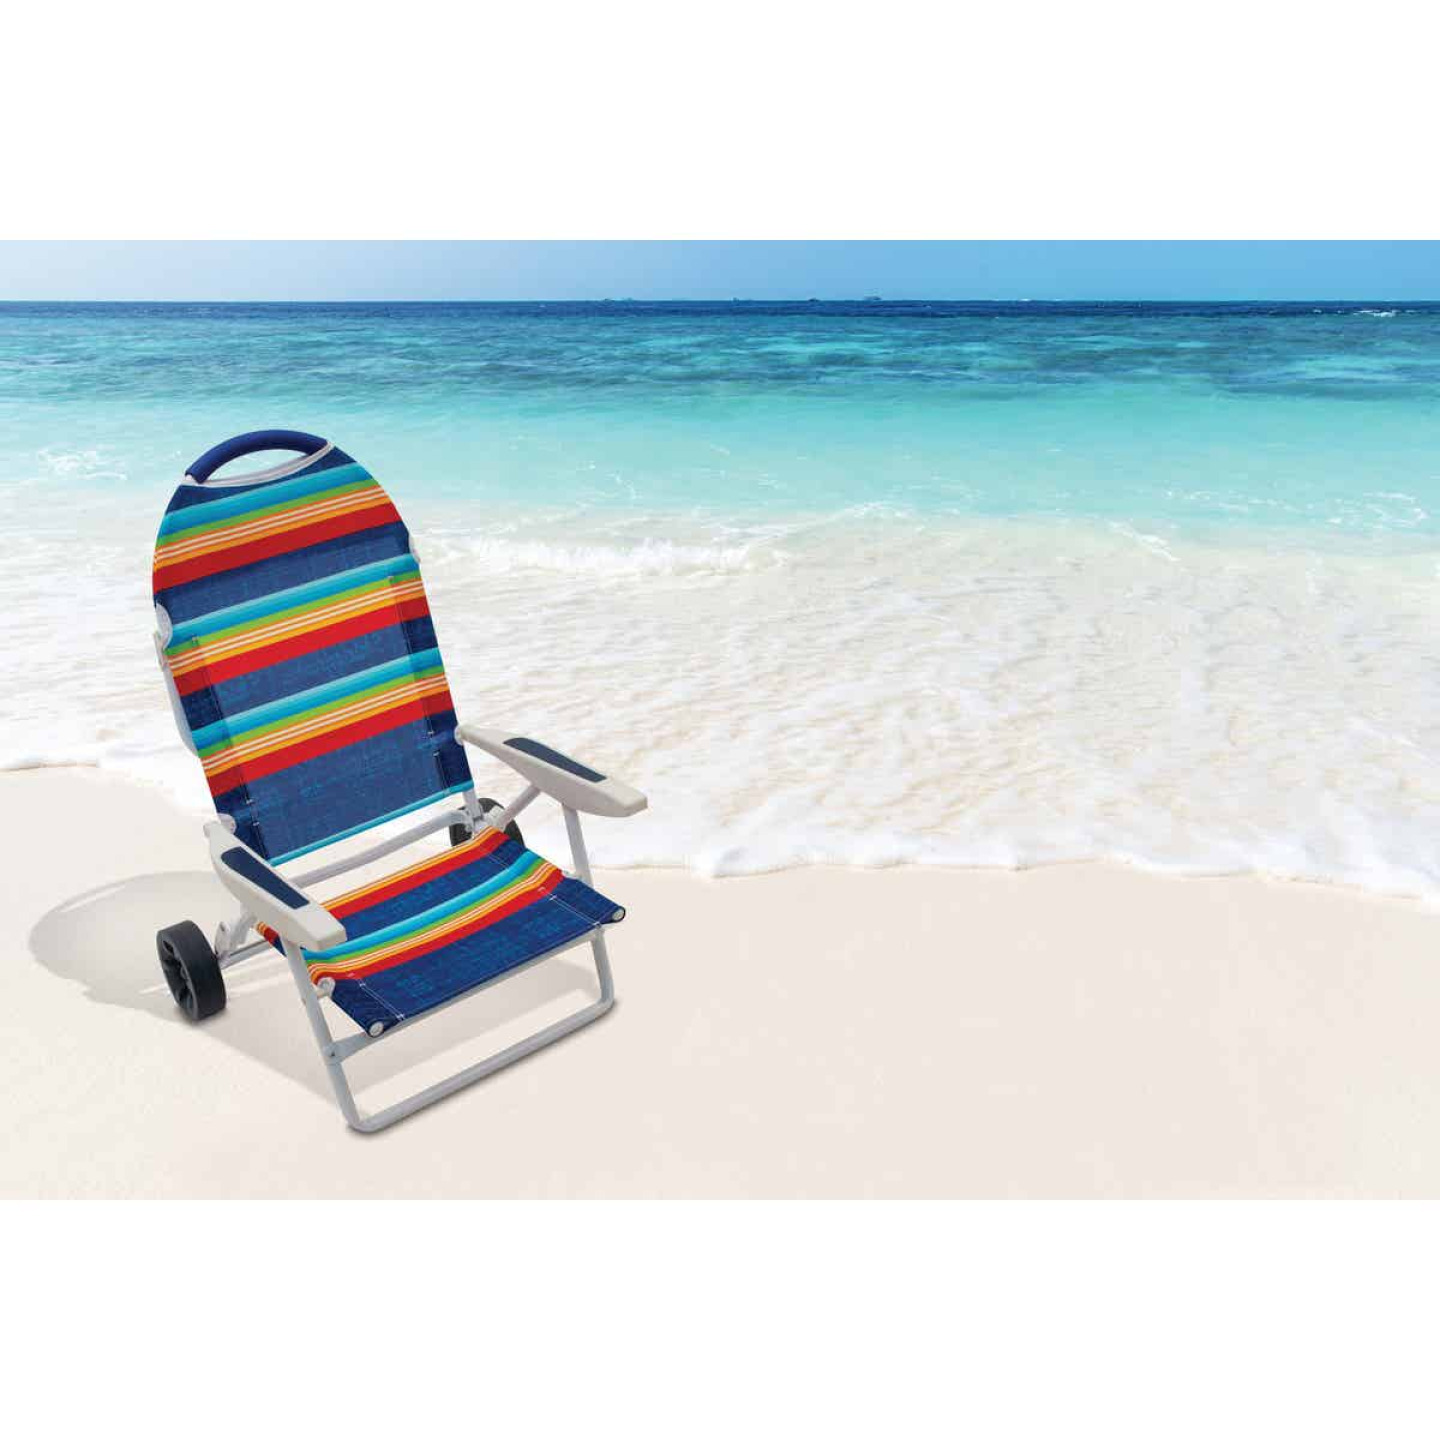 Rio Brands Transporter 5-Position Striped Steel Folding Beach Chair Image 3